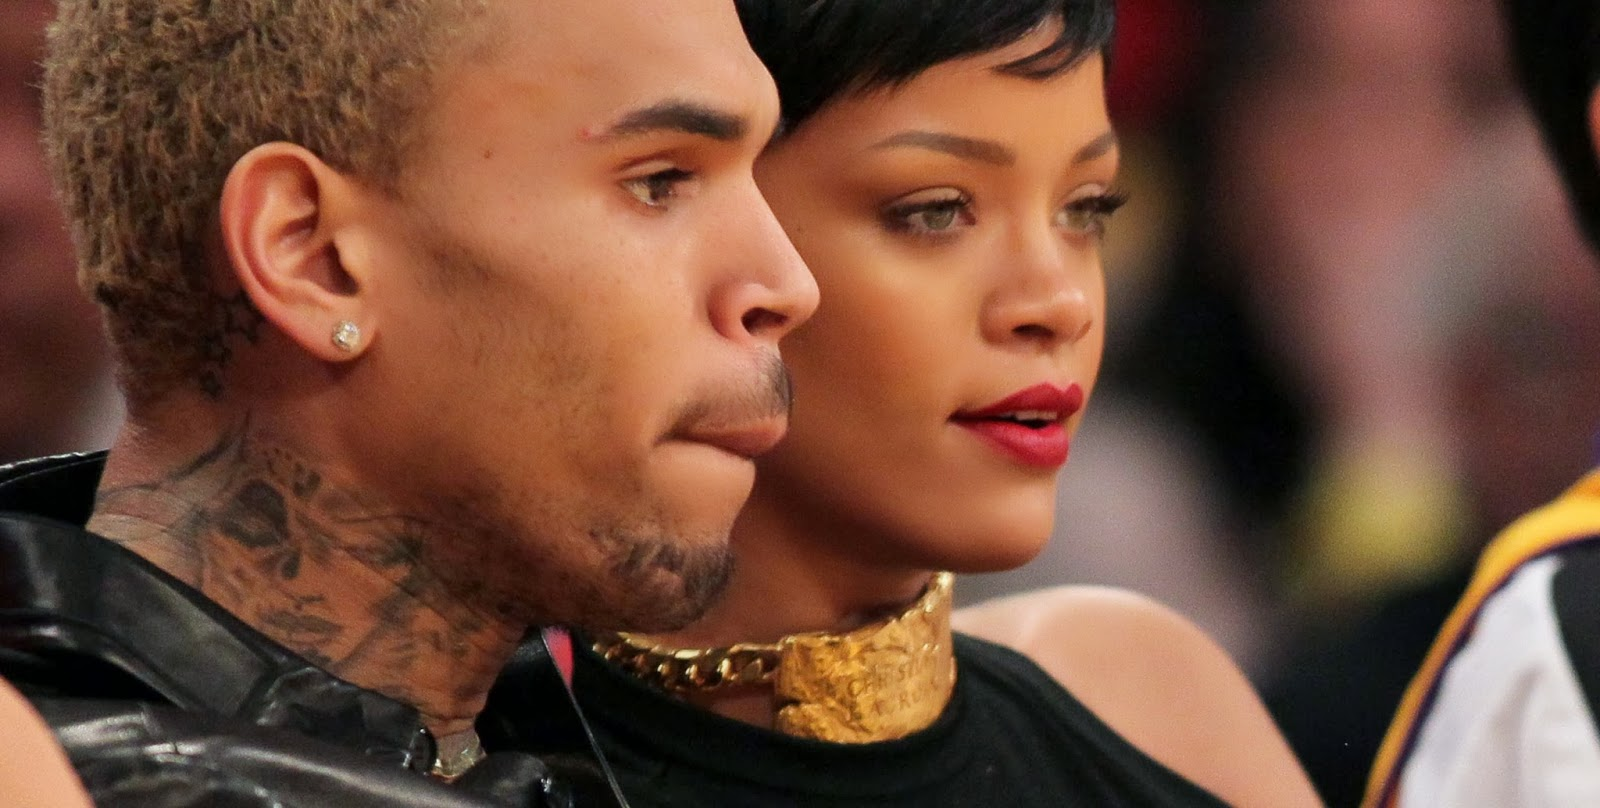 Pictures of rhianna beat up by chris brown Rihanna opens up about Chris Brown assault - BBC News - m